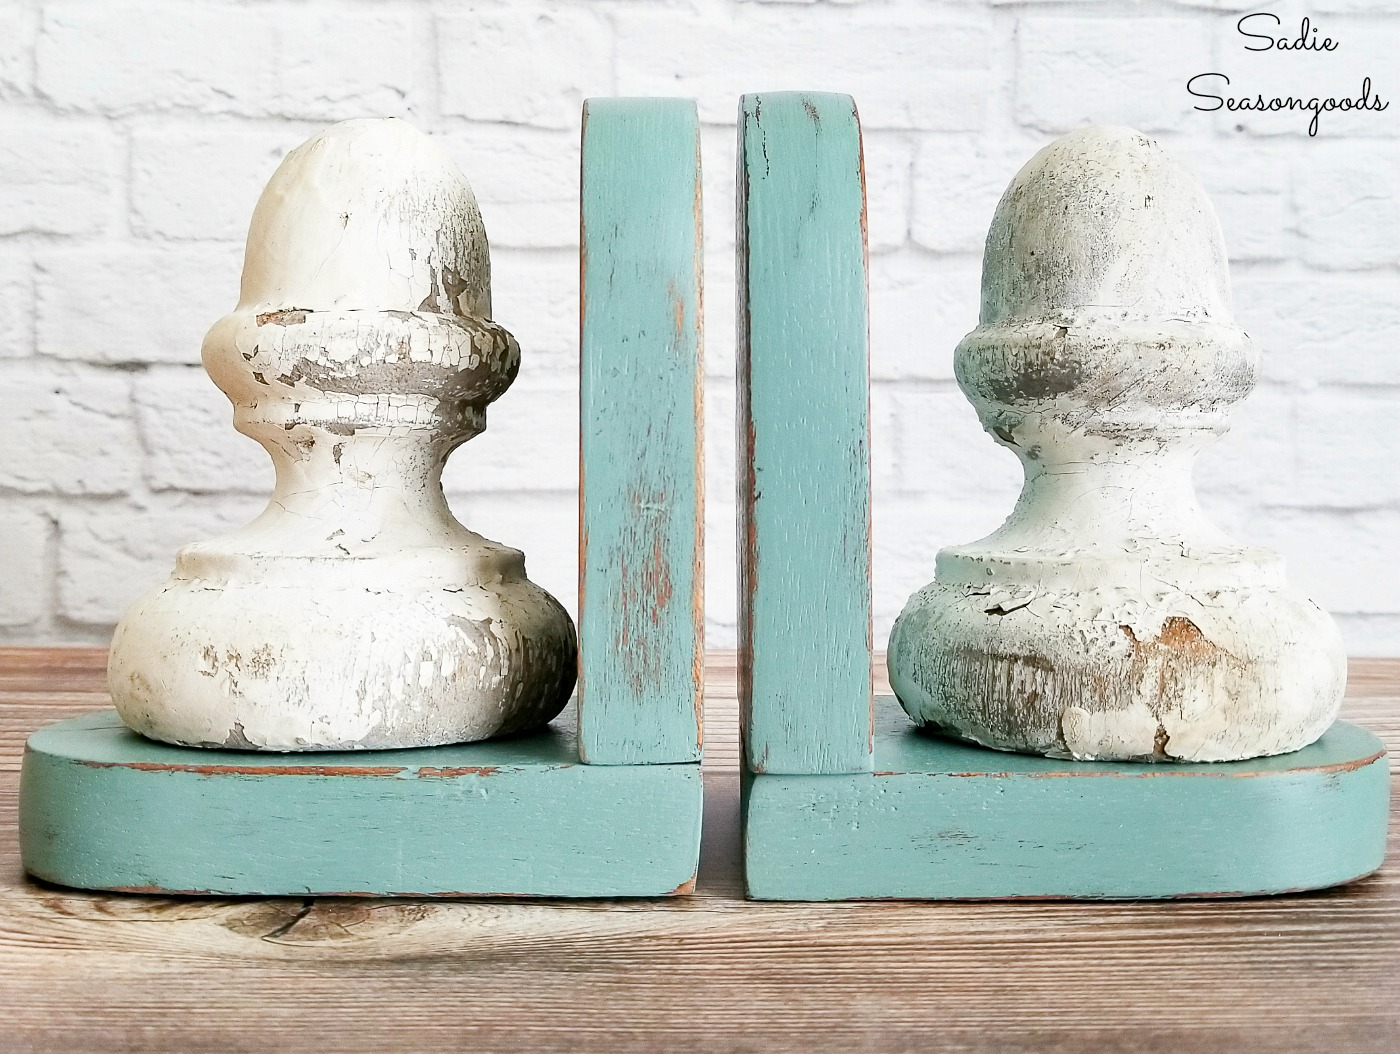 Vintage farmhouse decor with architectural antiques and wood bookends